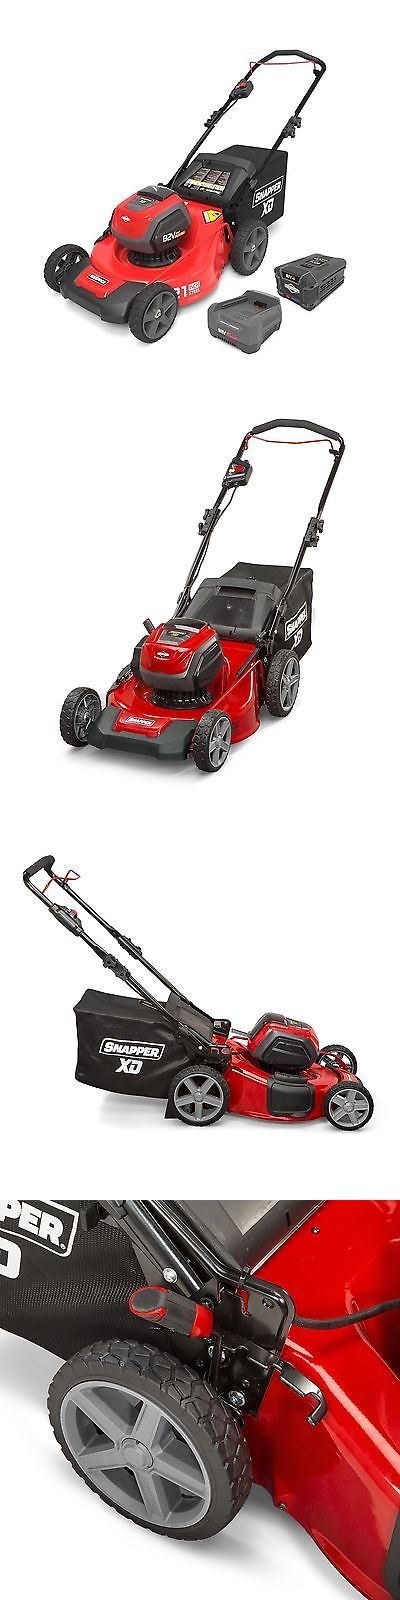 Walk-Behind Mowers 71272: Snapper Xd 82 Volt 21 Inch Cordless Lawn Mower W Battery And Charger | 1687884 -> BUY IT NOW ONLY: $489.99 on eBay!